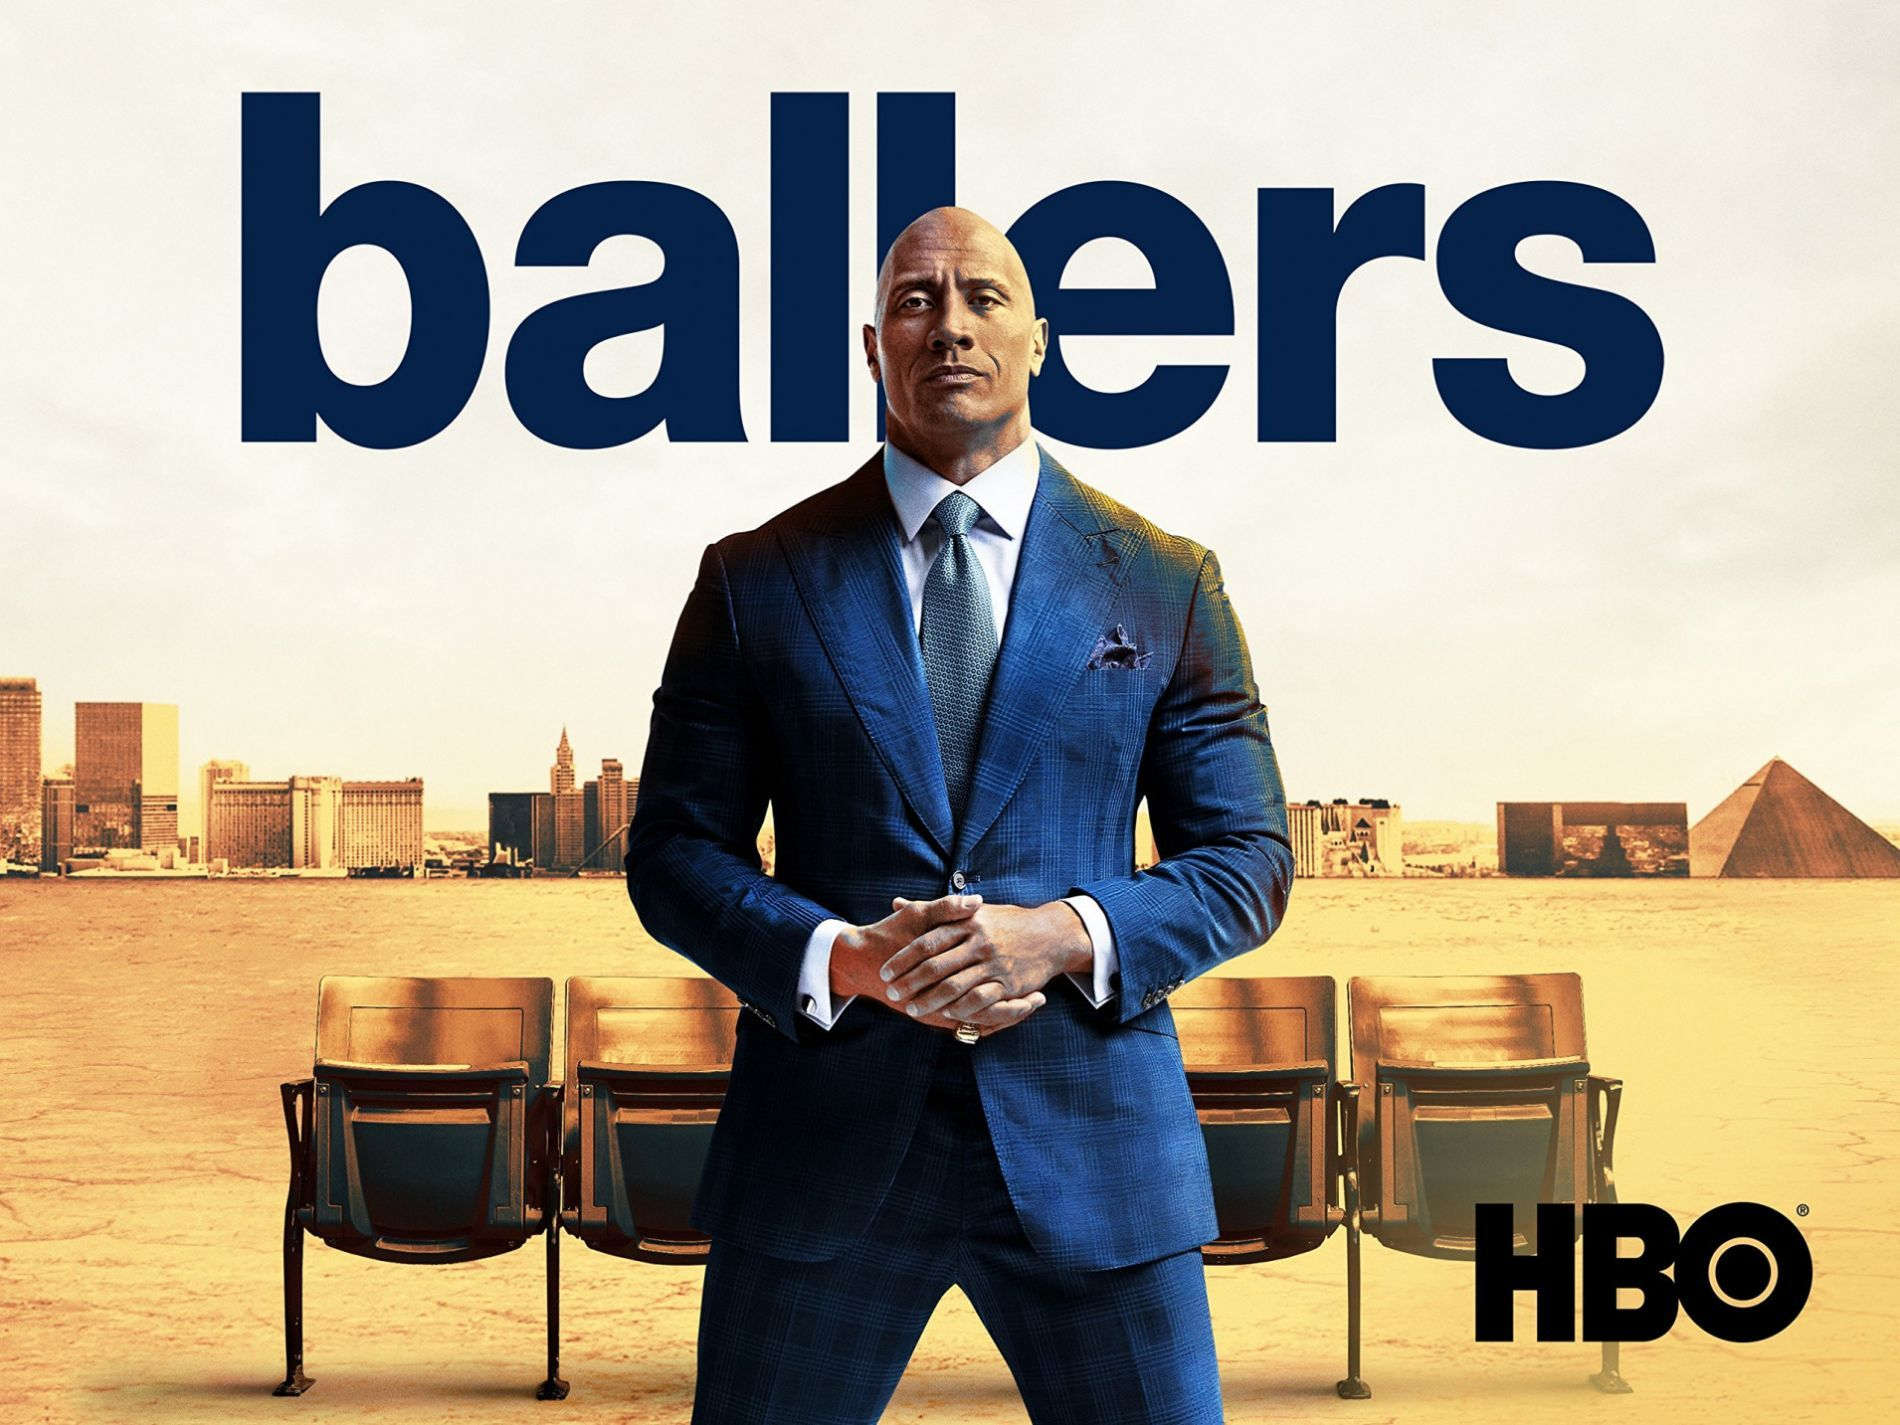 'Bad Bitches' by Onderkoffer in TV Serie 'Ballers'